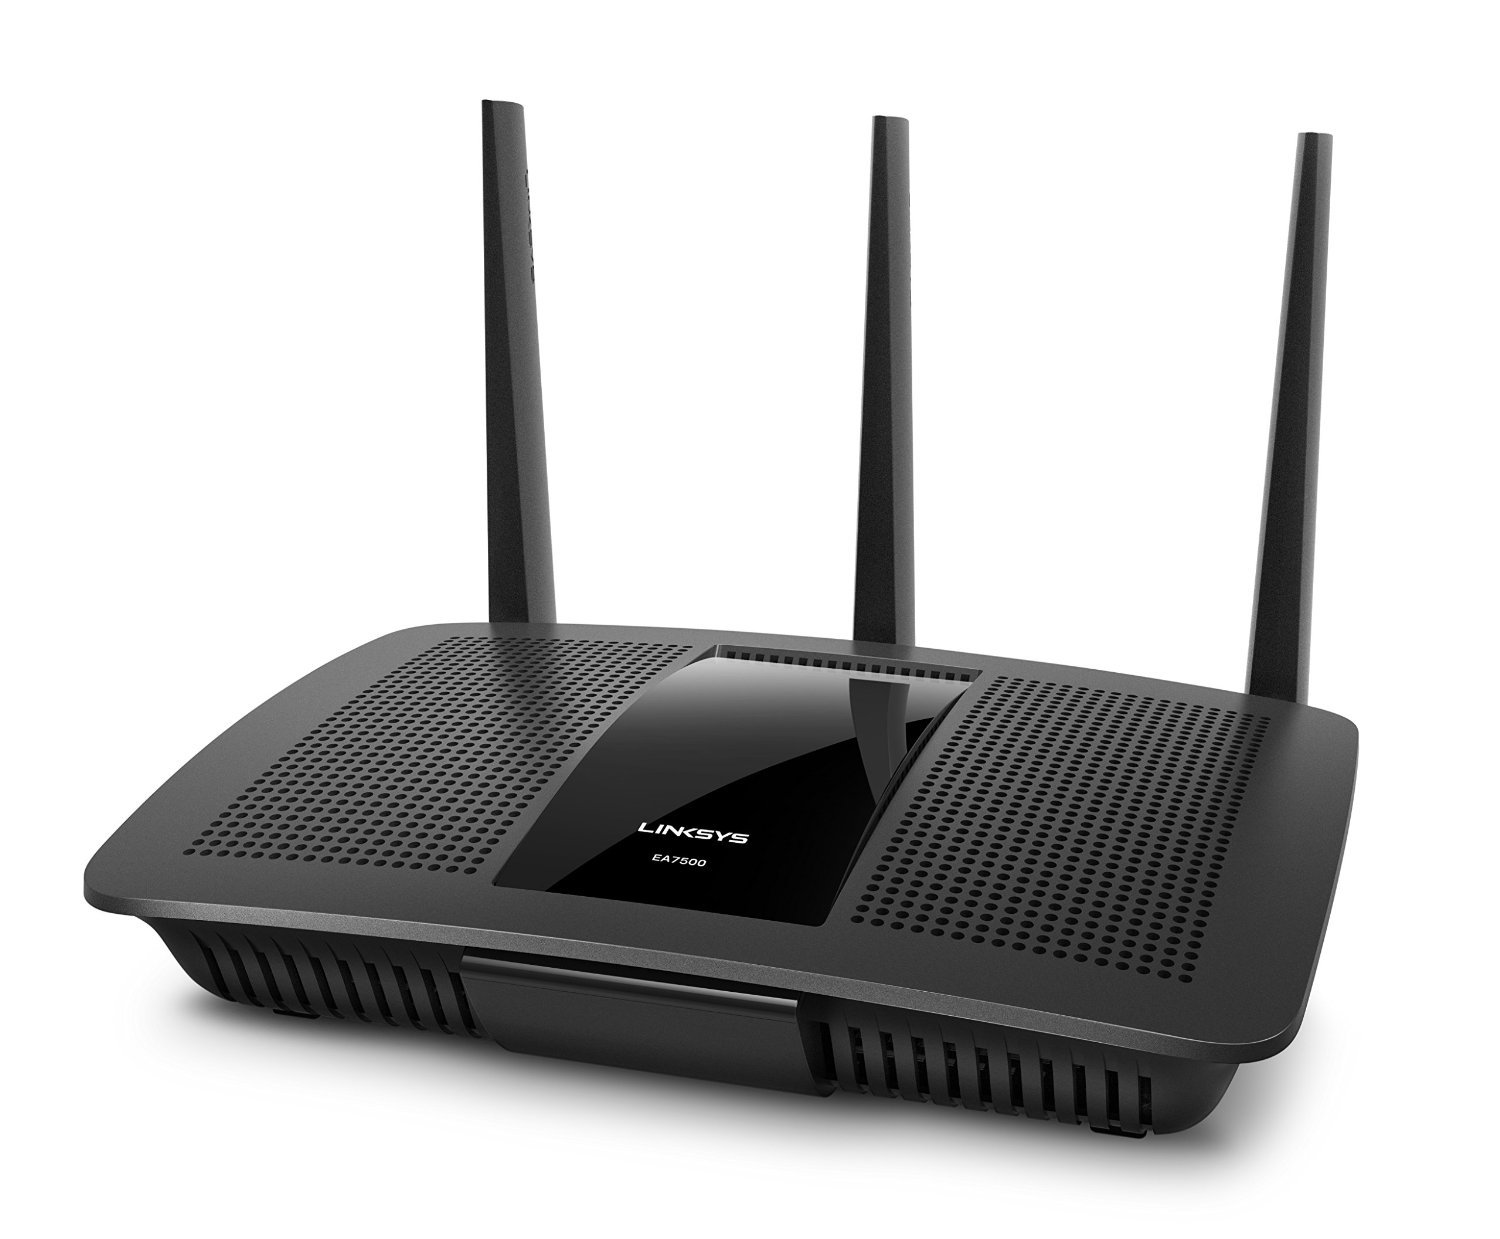 Linksys Wifi Router Ea7500 2.4 Ghz, 5 Ghz 1900 Mbit/S by Linksys